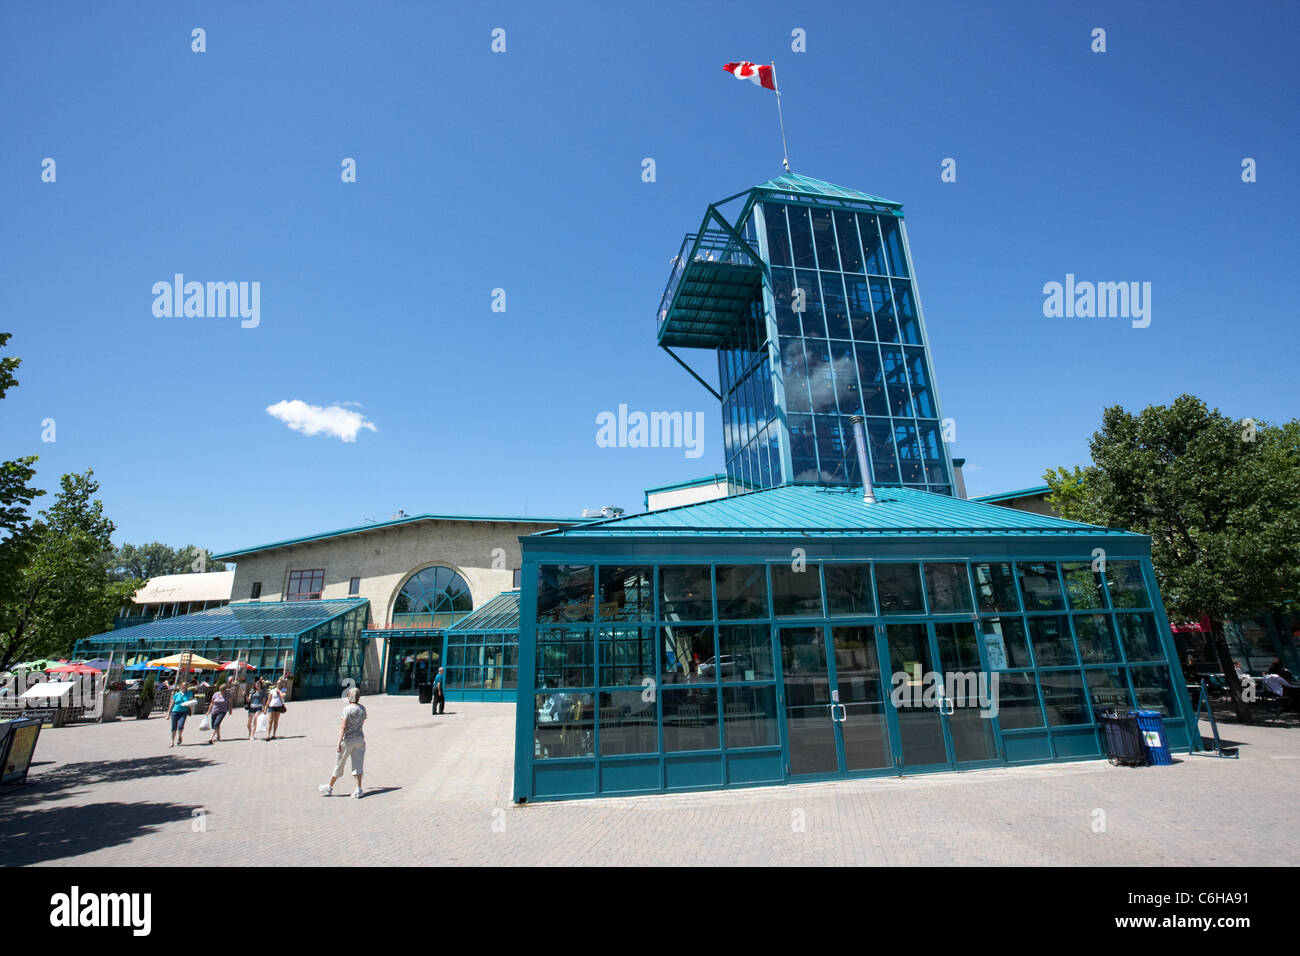 the forks market and tower Winnipeg Manitoba Canada - Stock Image